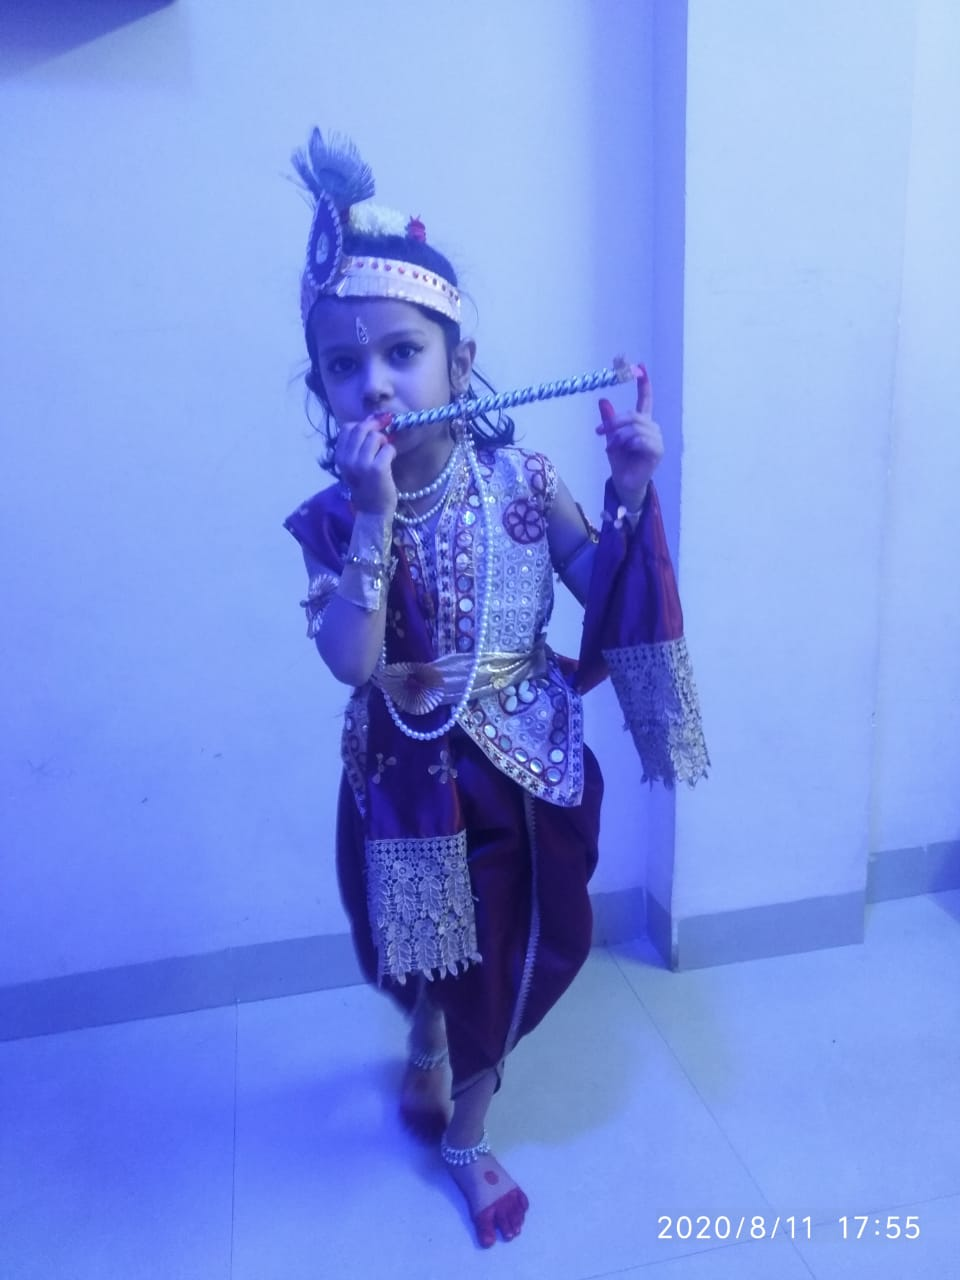 Primary Fancy Dress Competition